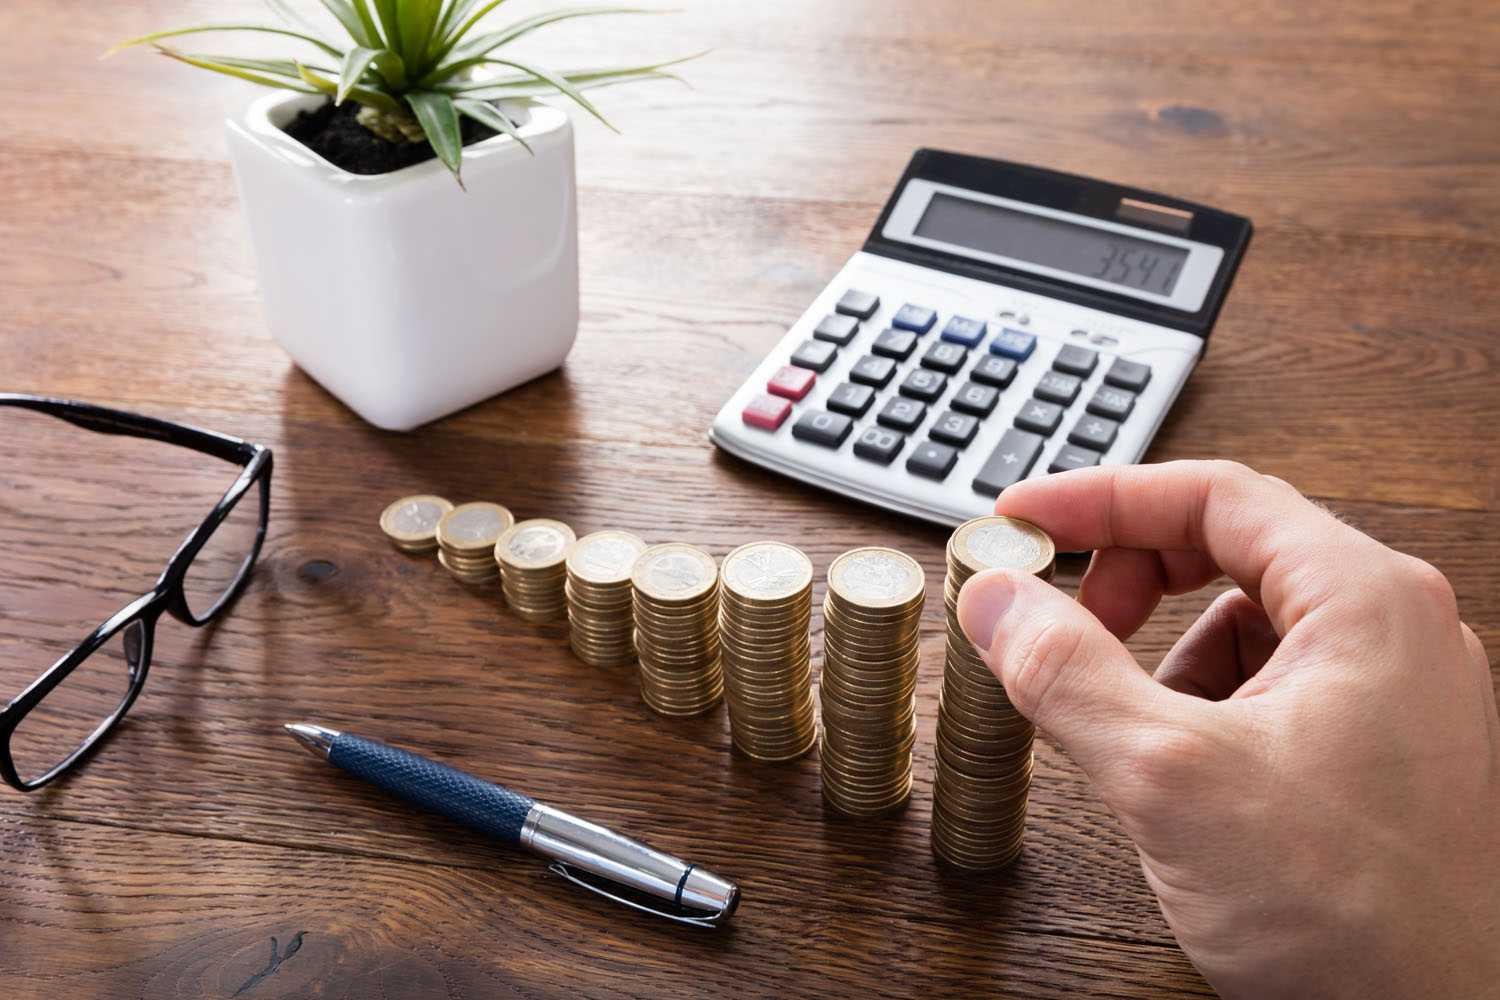 stack of coins being counted with a calculator